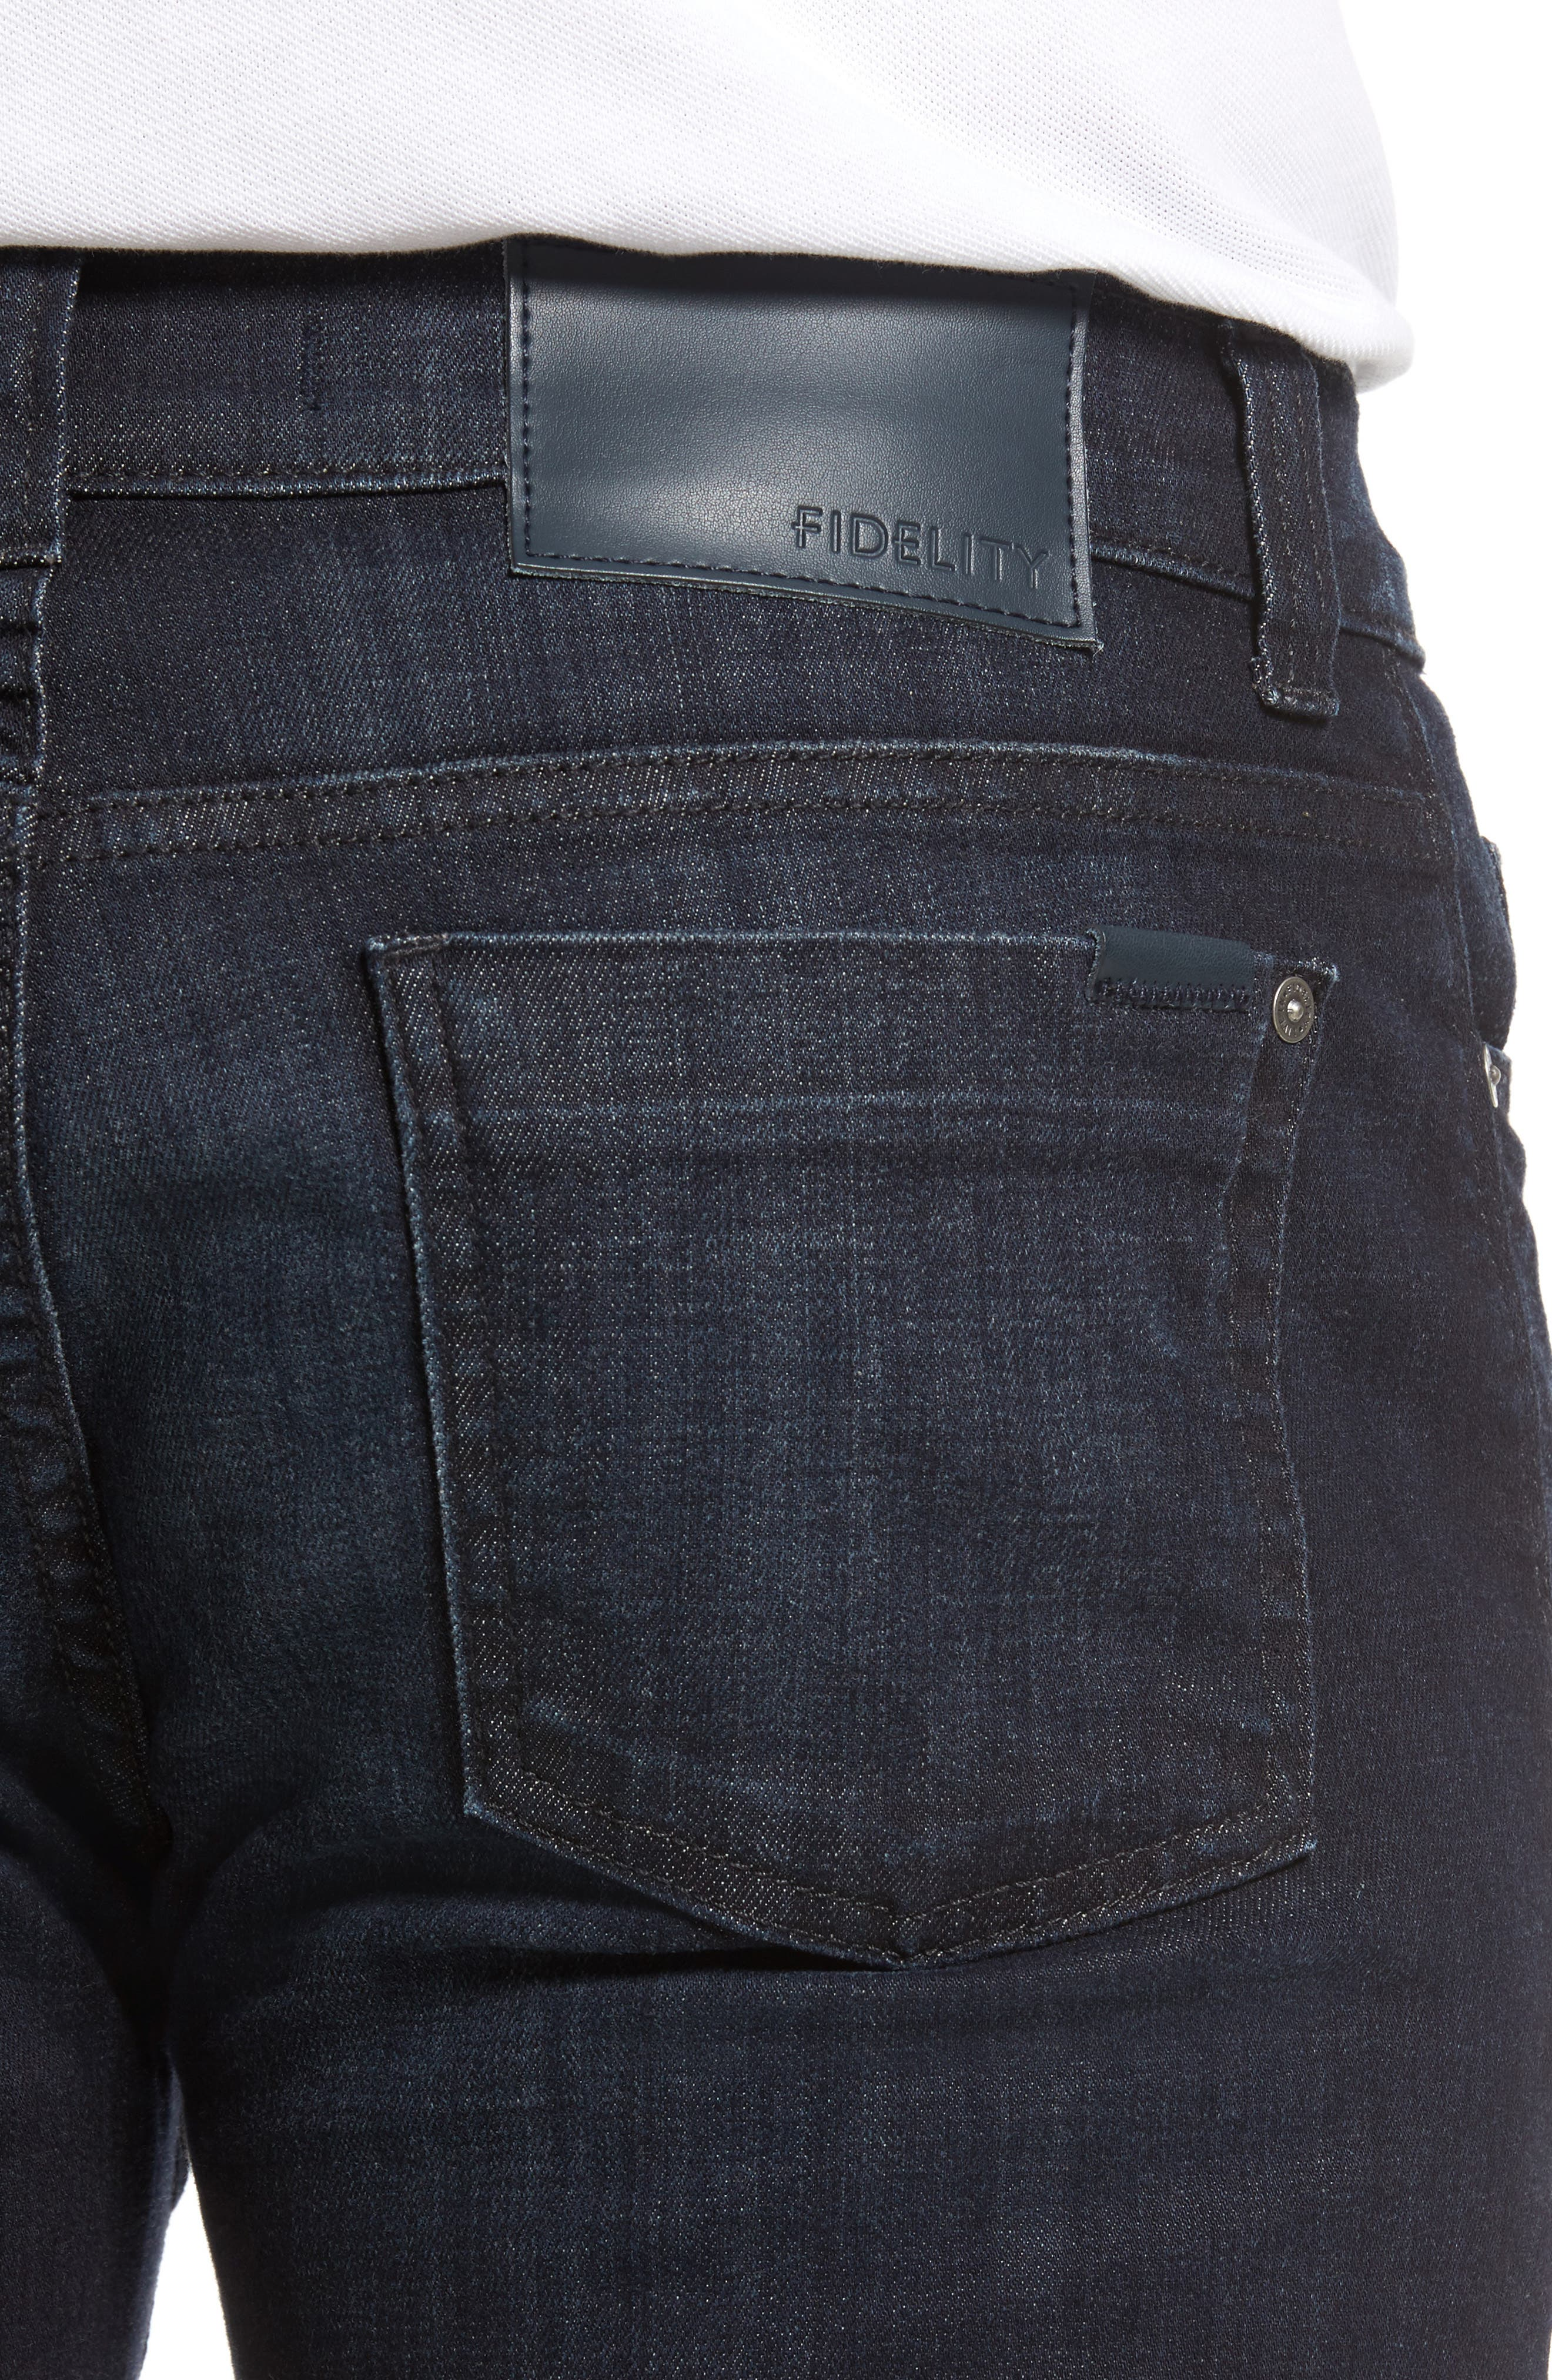 5011 Relaxed Fit Jeans,                             Alternate thumbnail 4, color,